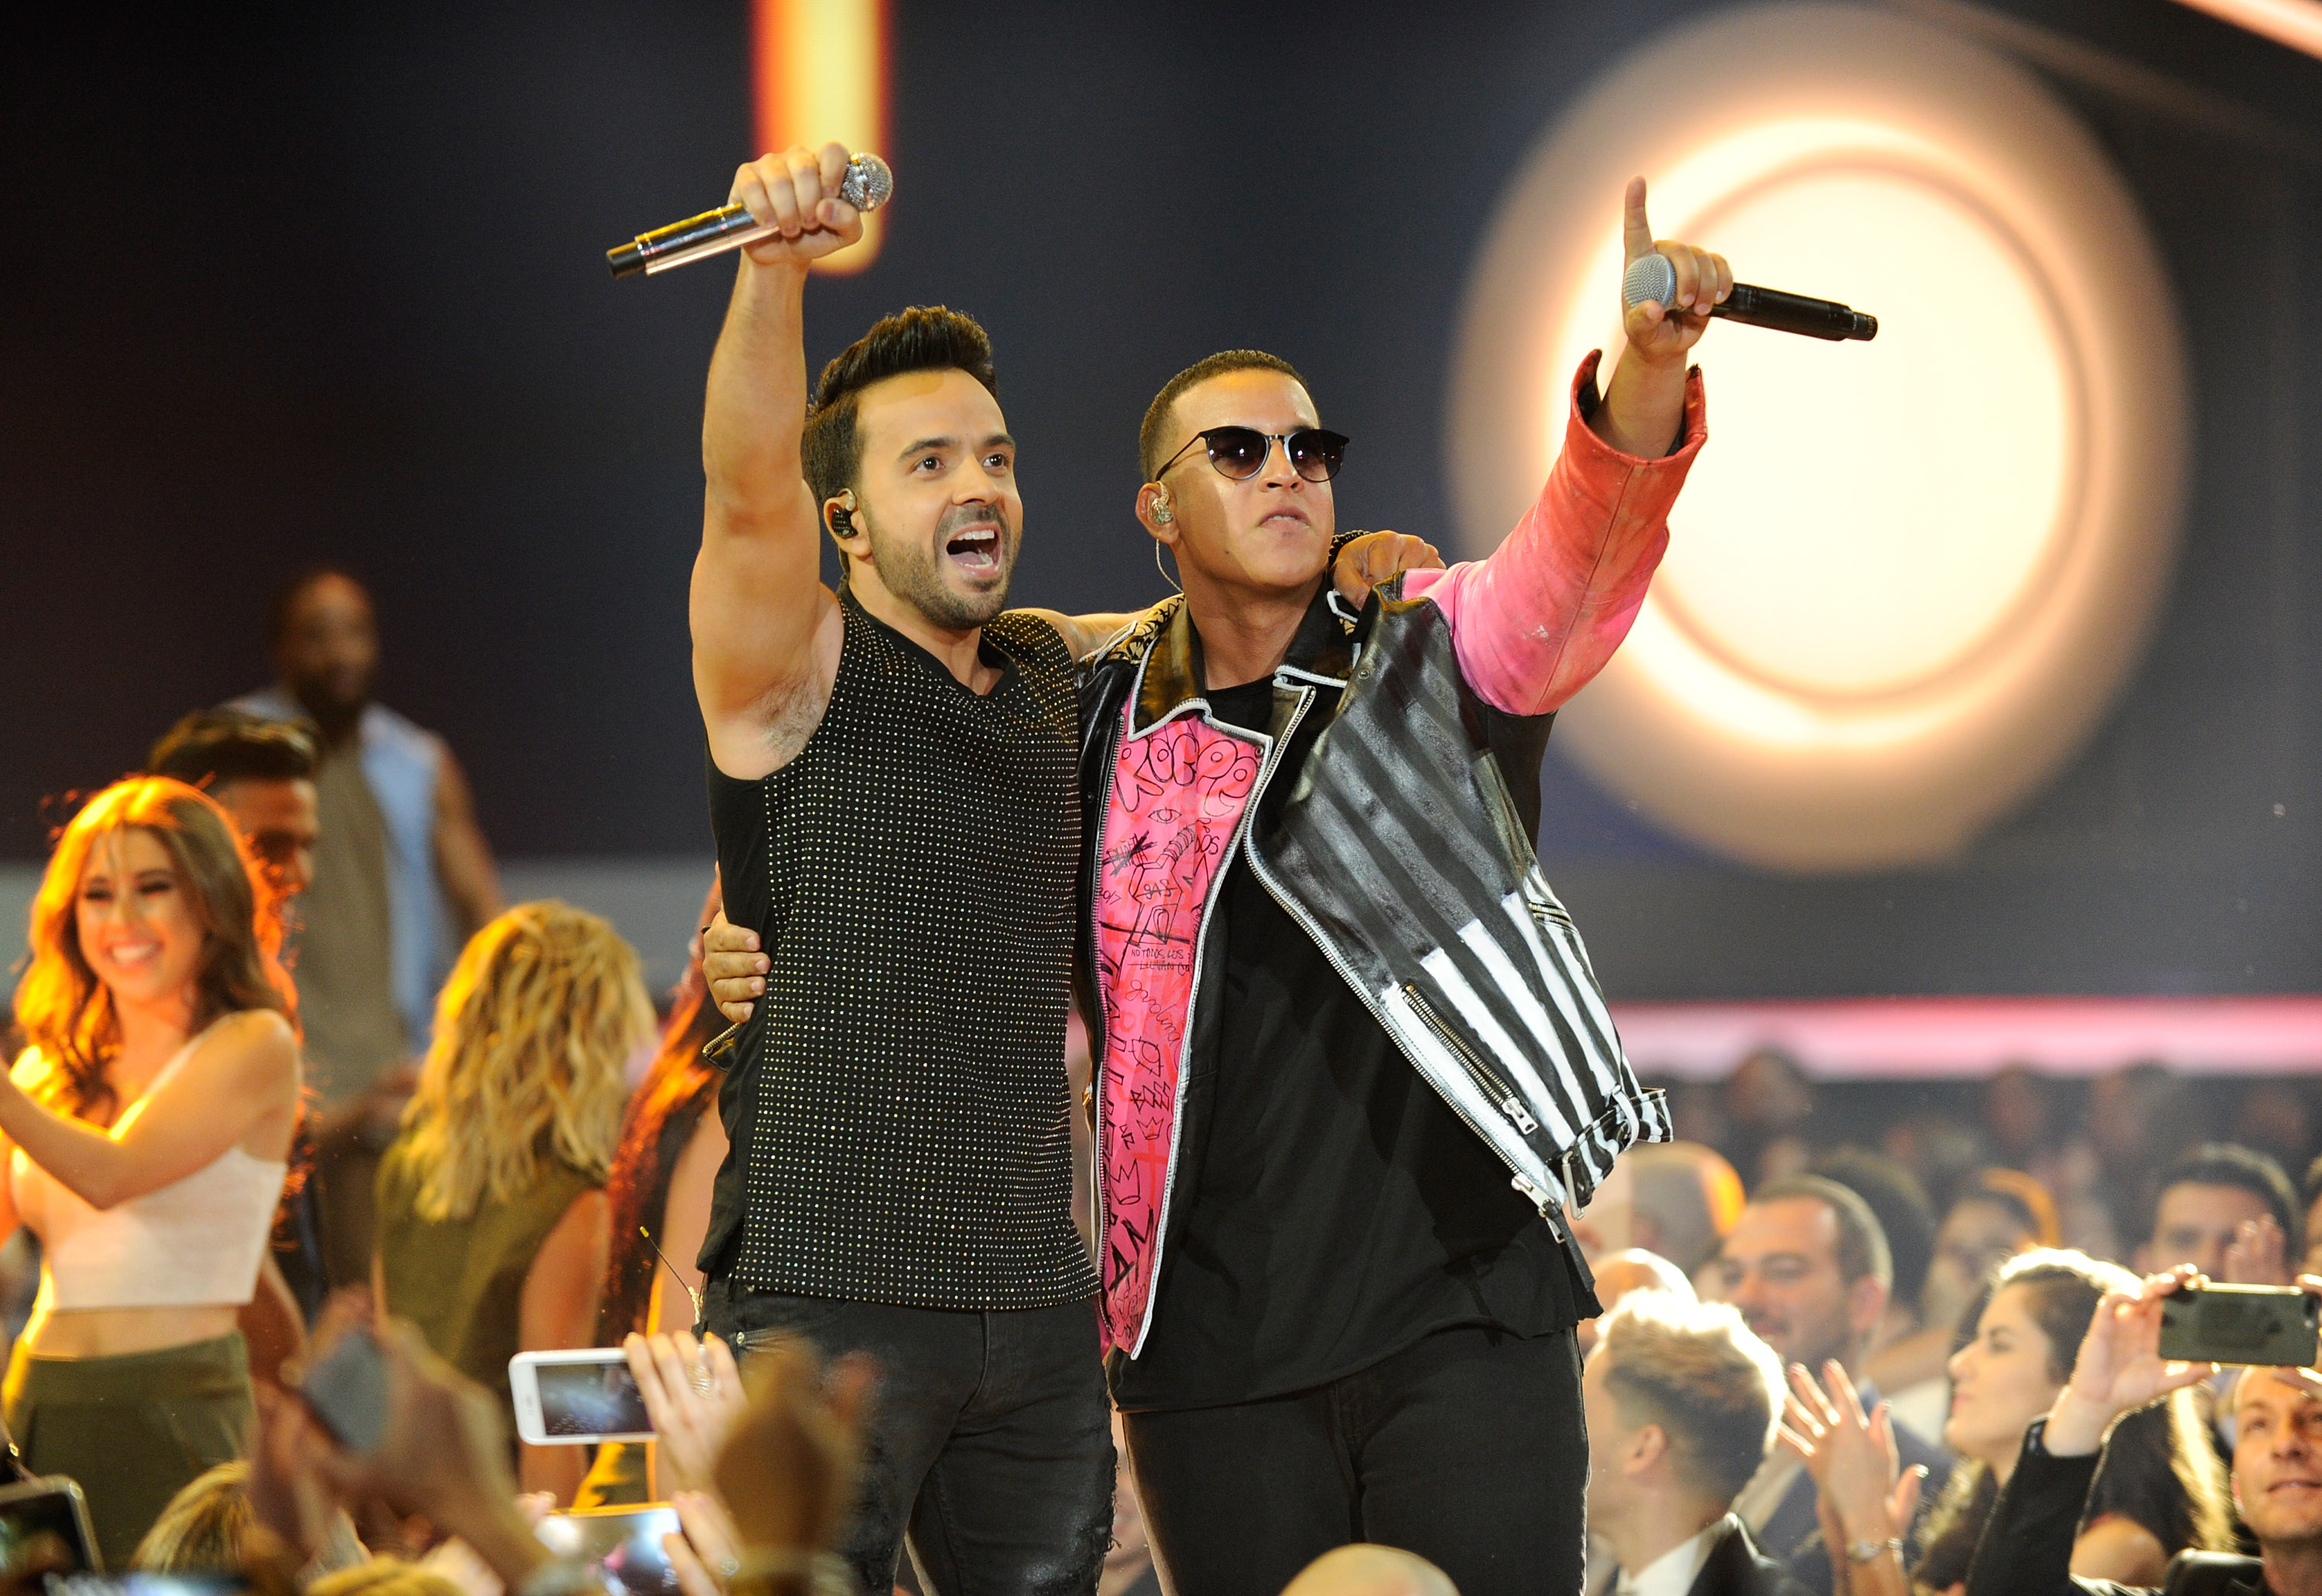 Luis Fonsi and Daddy Yankee chantent sur la scène du Watsco Center en Floride en avril 2017, lors des Billboard Latin Music Awards.